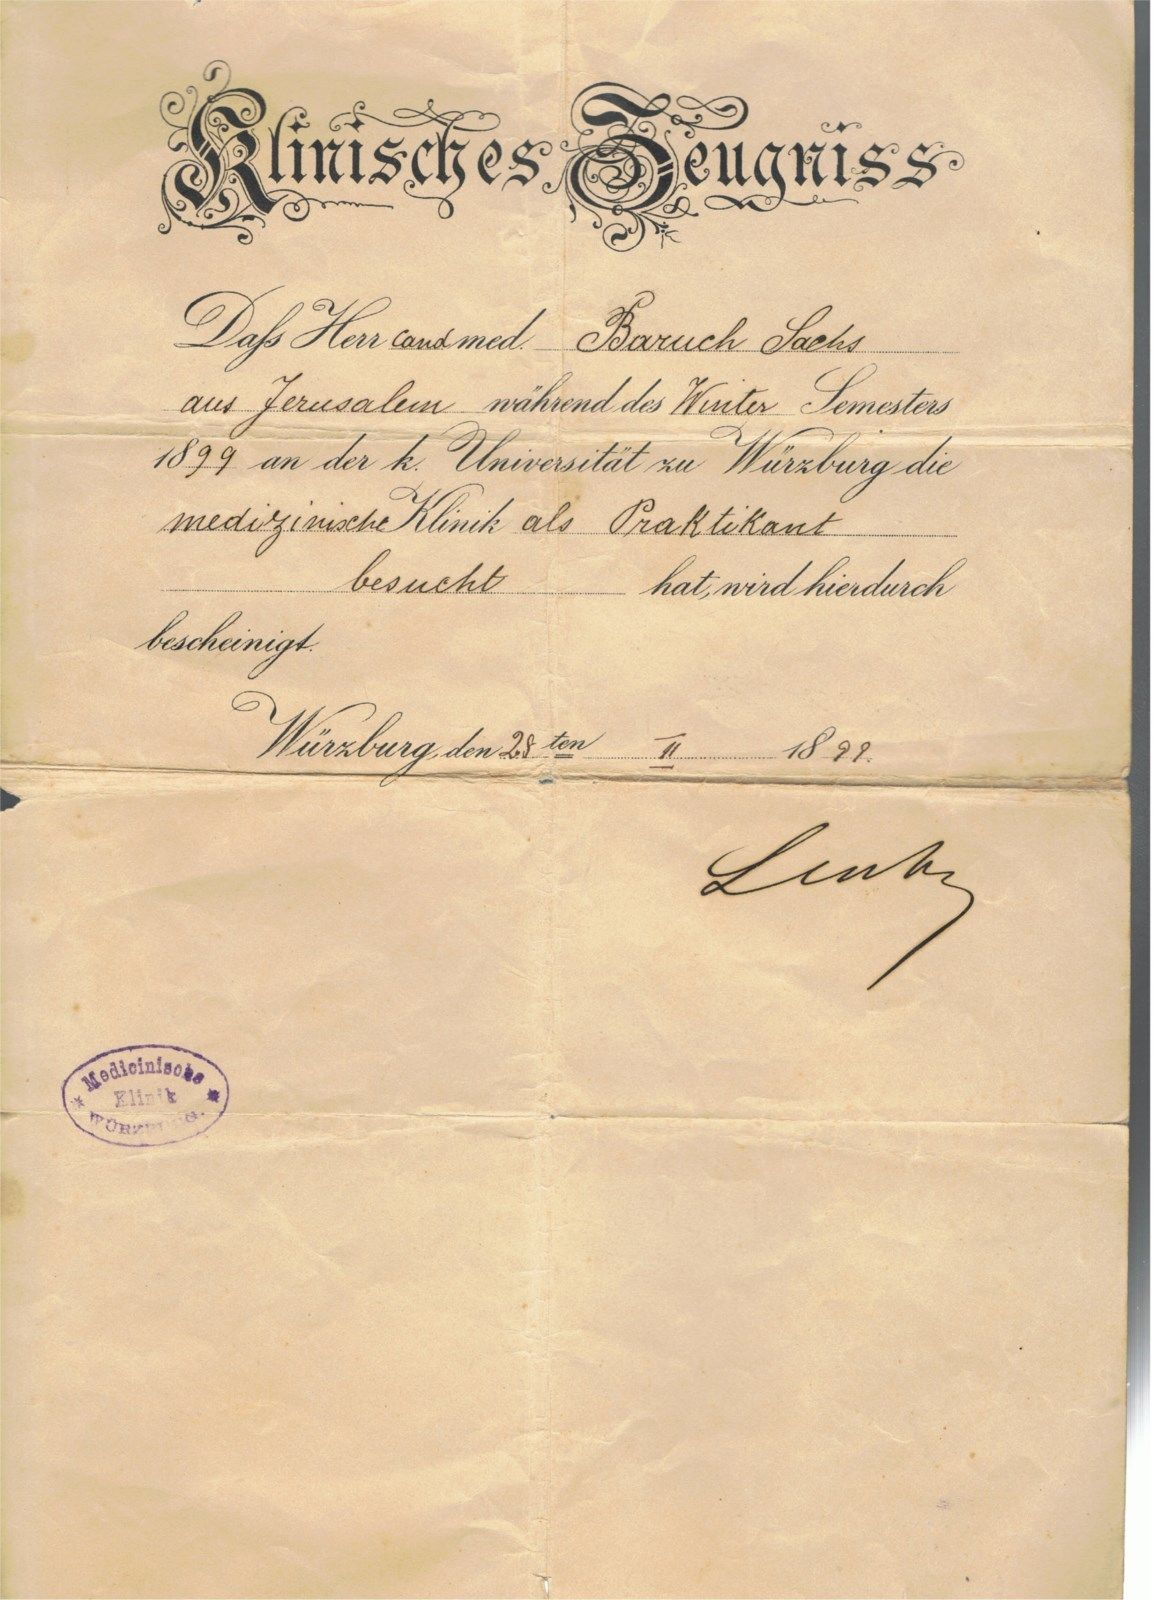 23 Judaica Old Germany Medicine Document Clinical Certificate